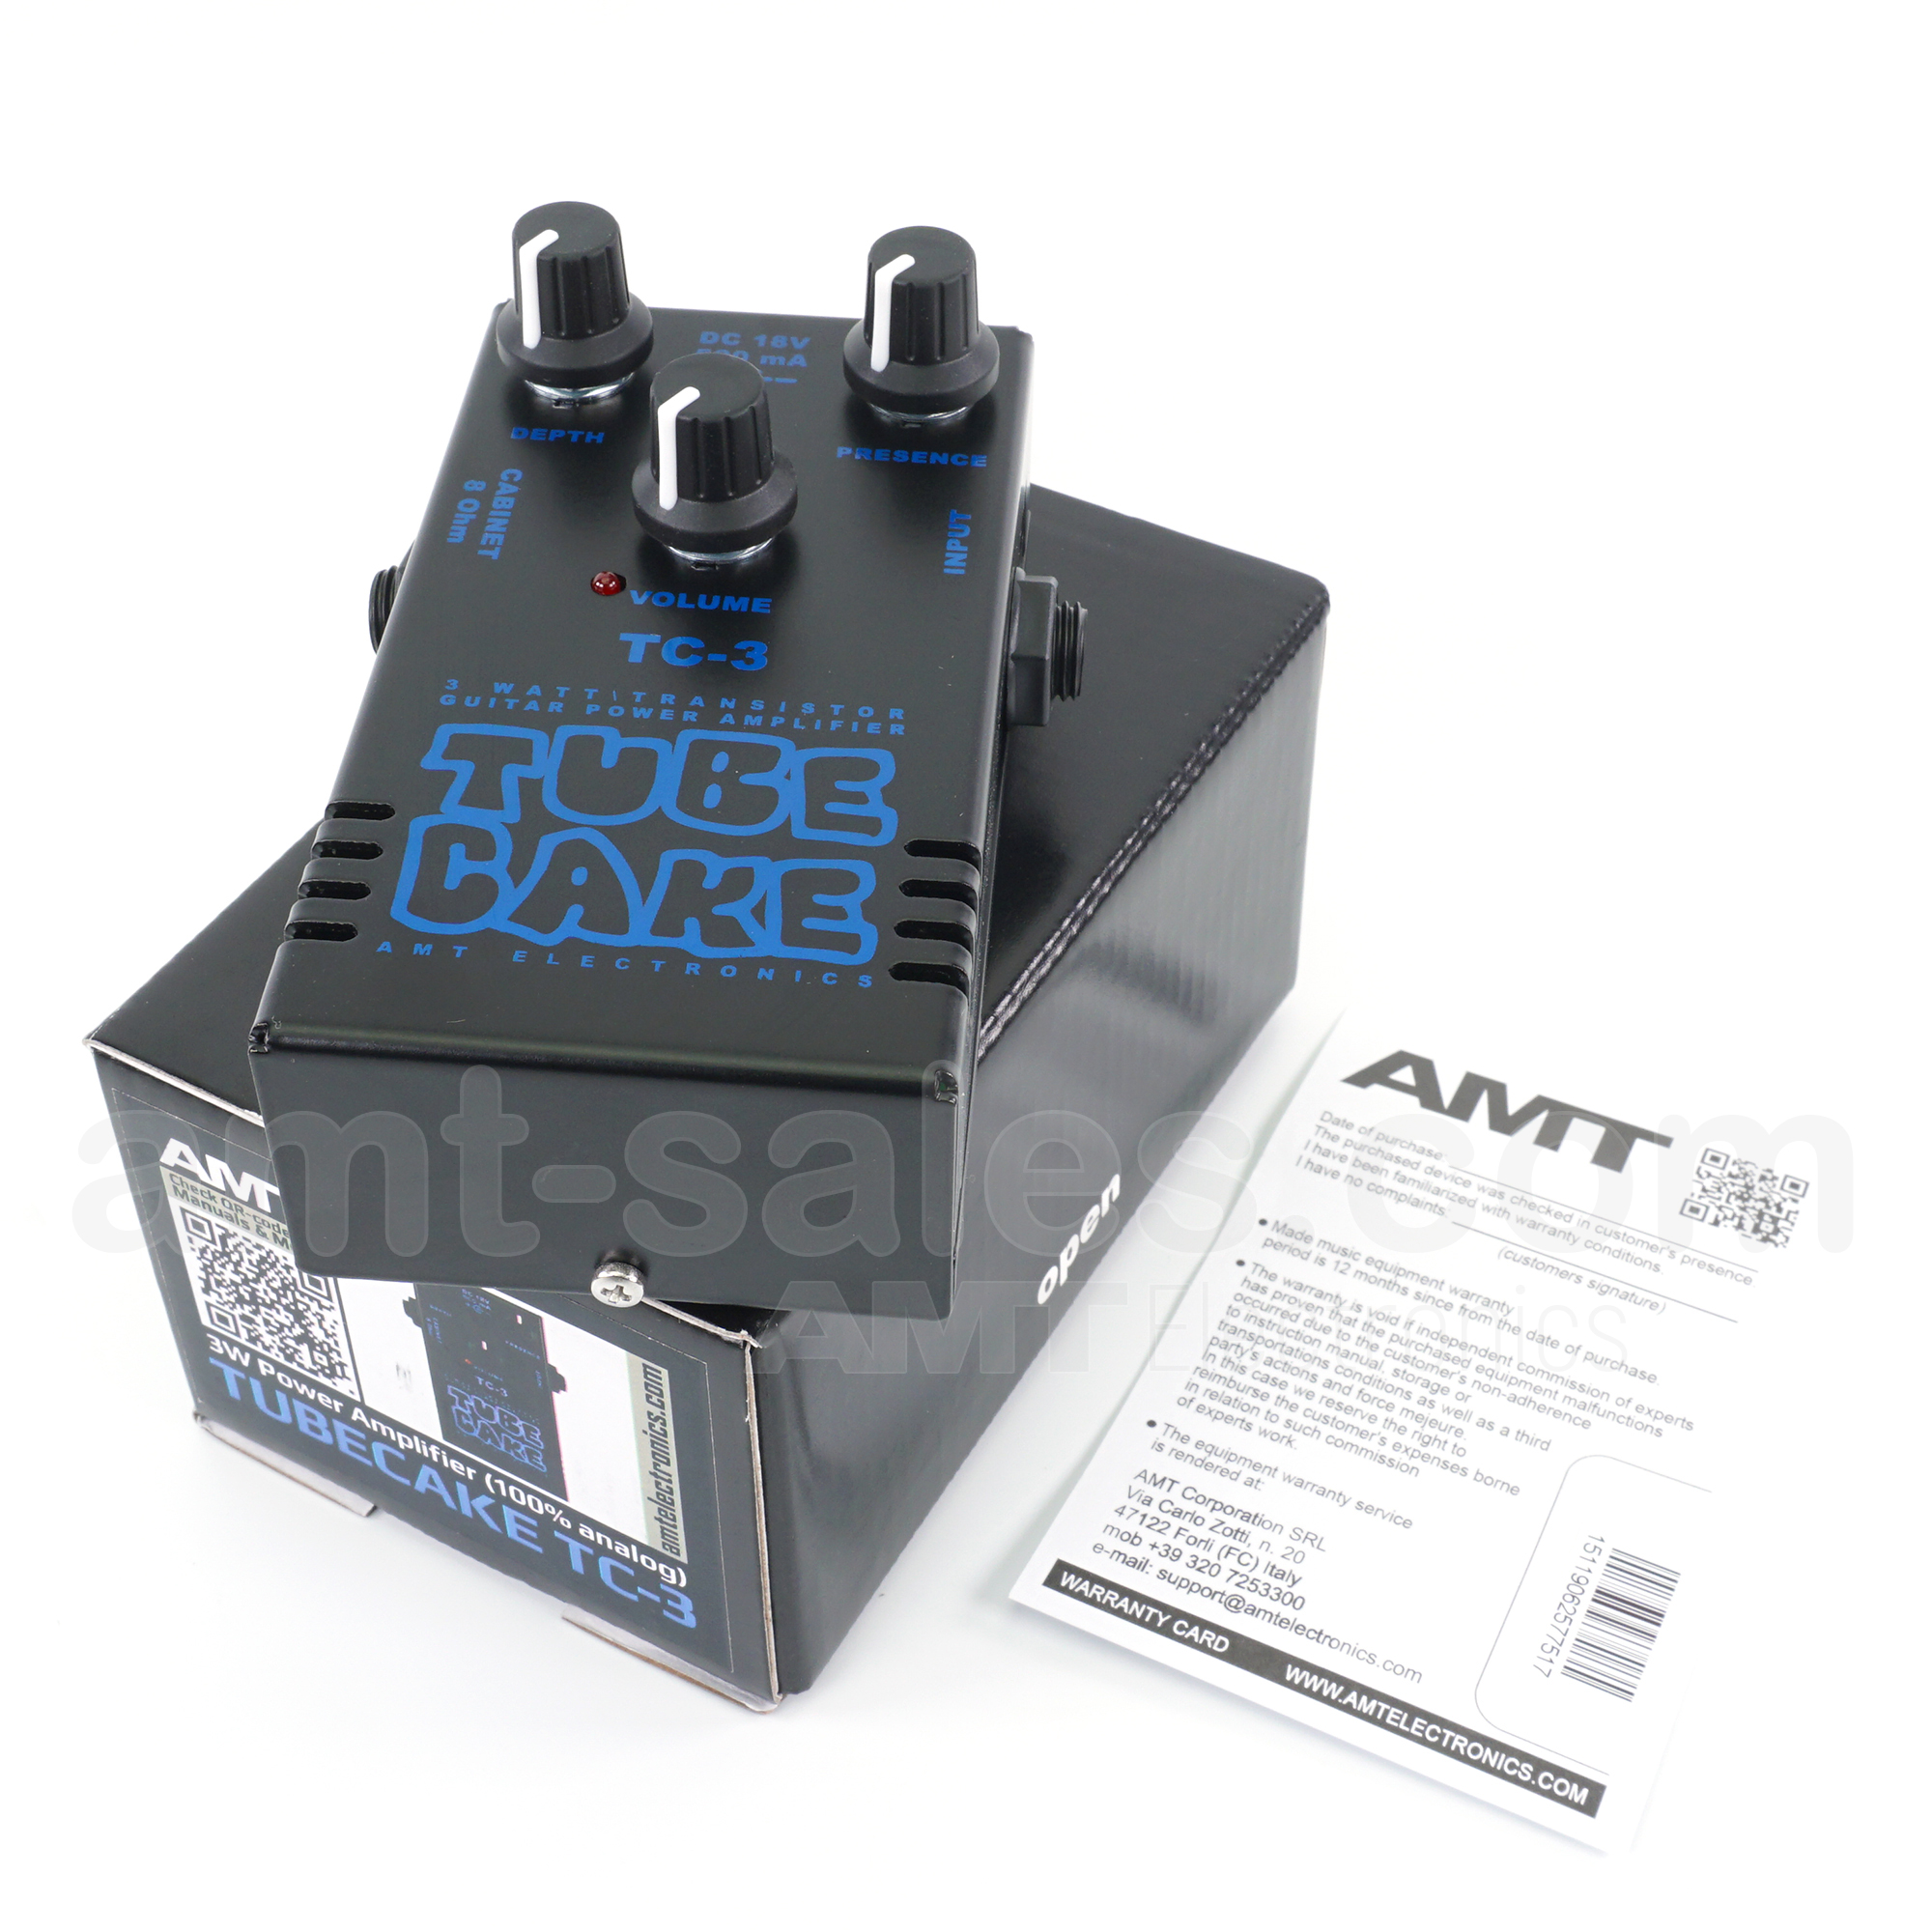 AMT Tubecake 3W - 3W Power Amplifier (100% analog)